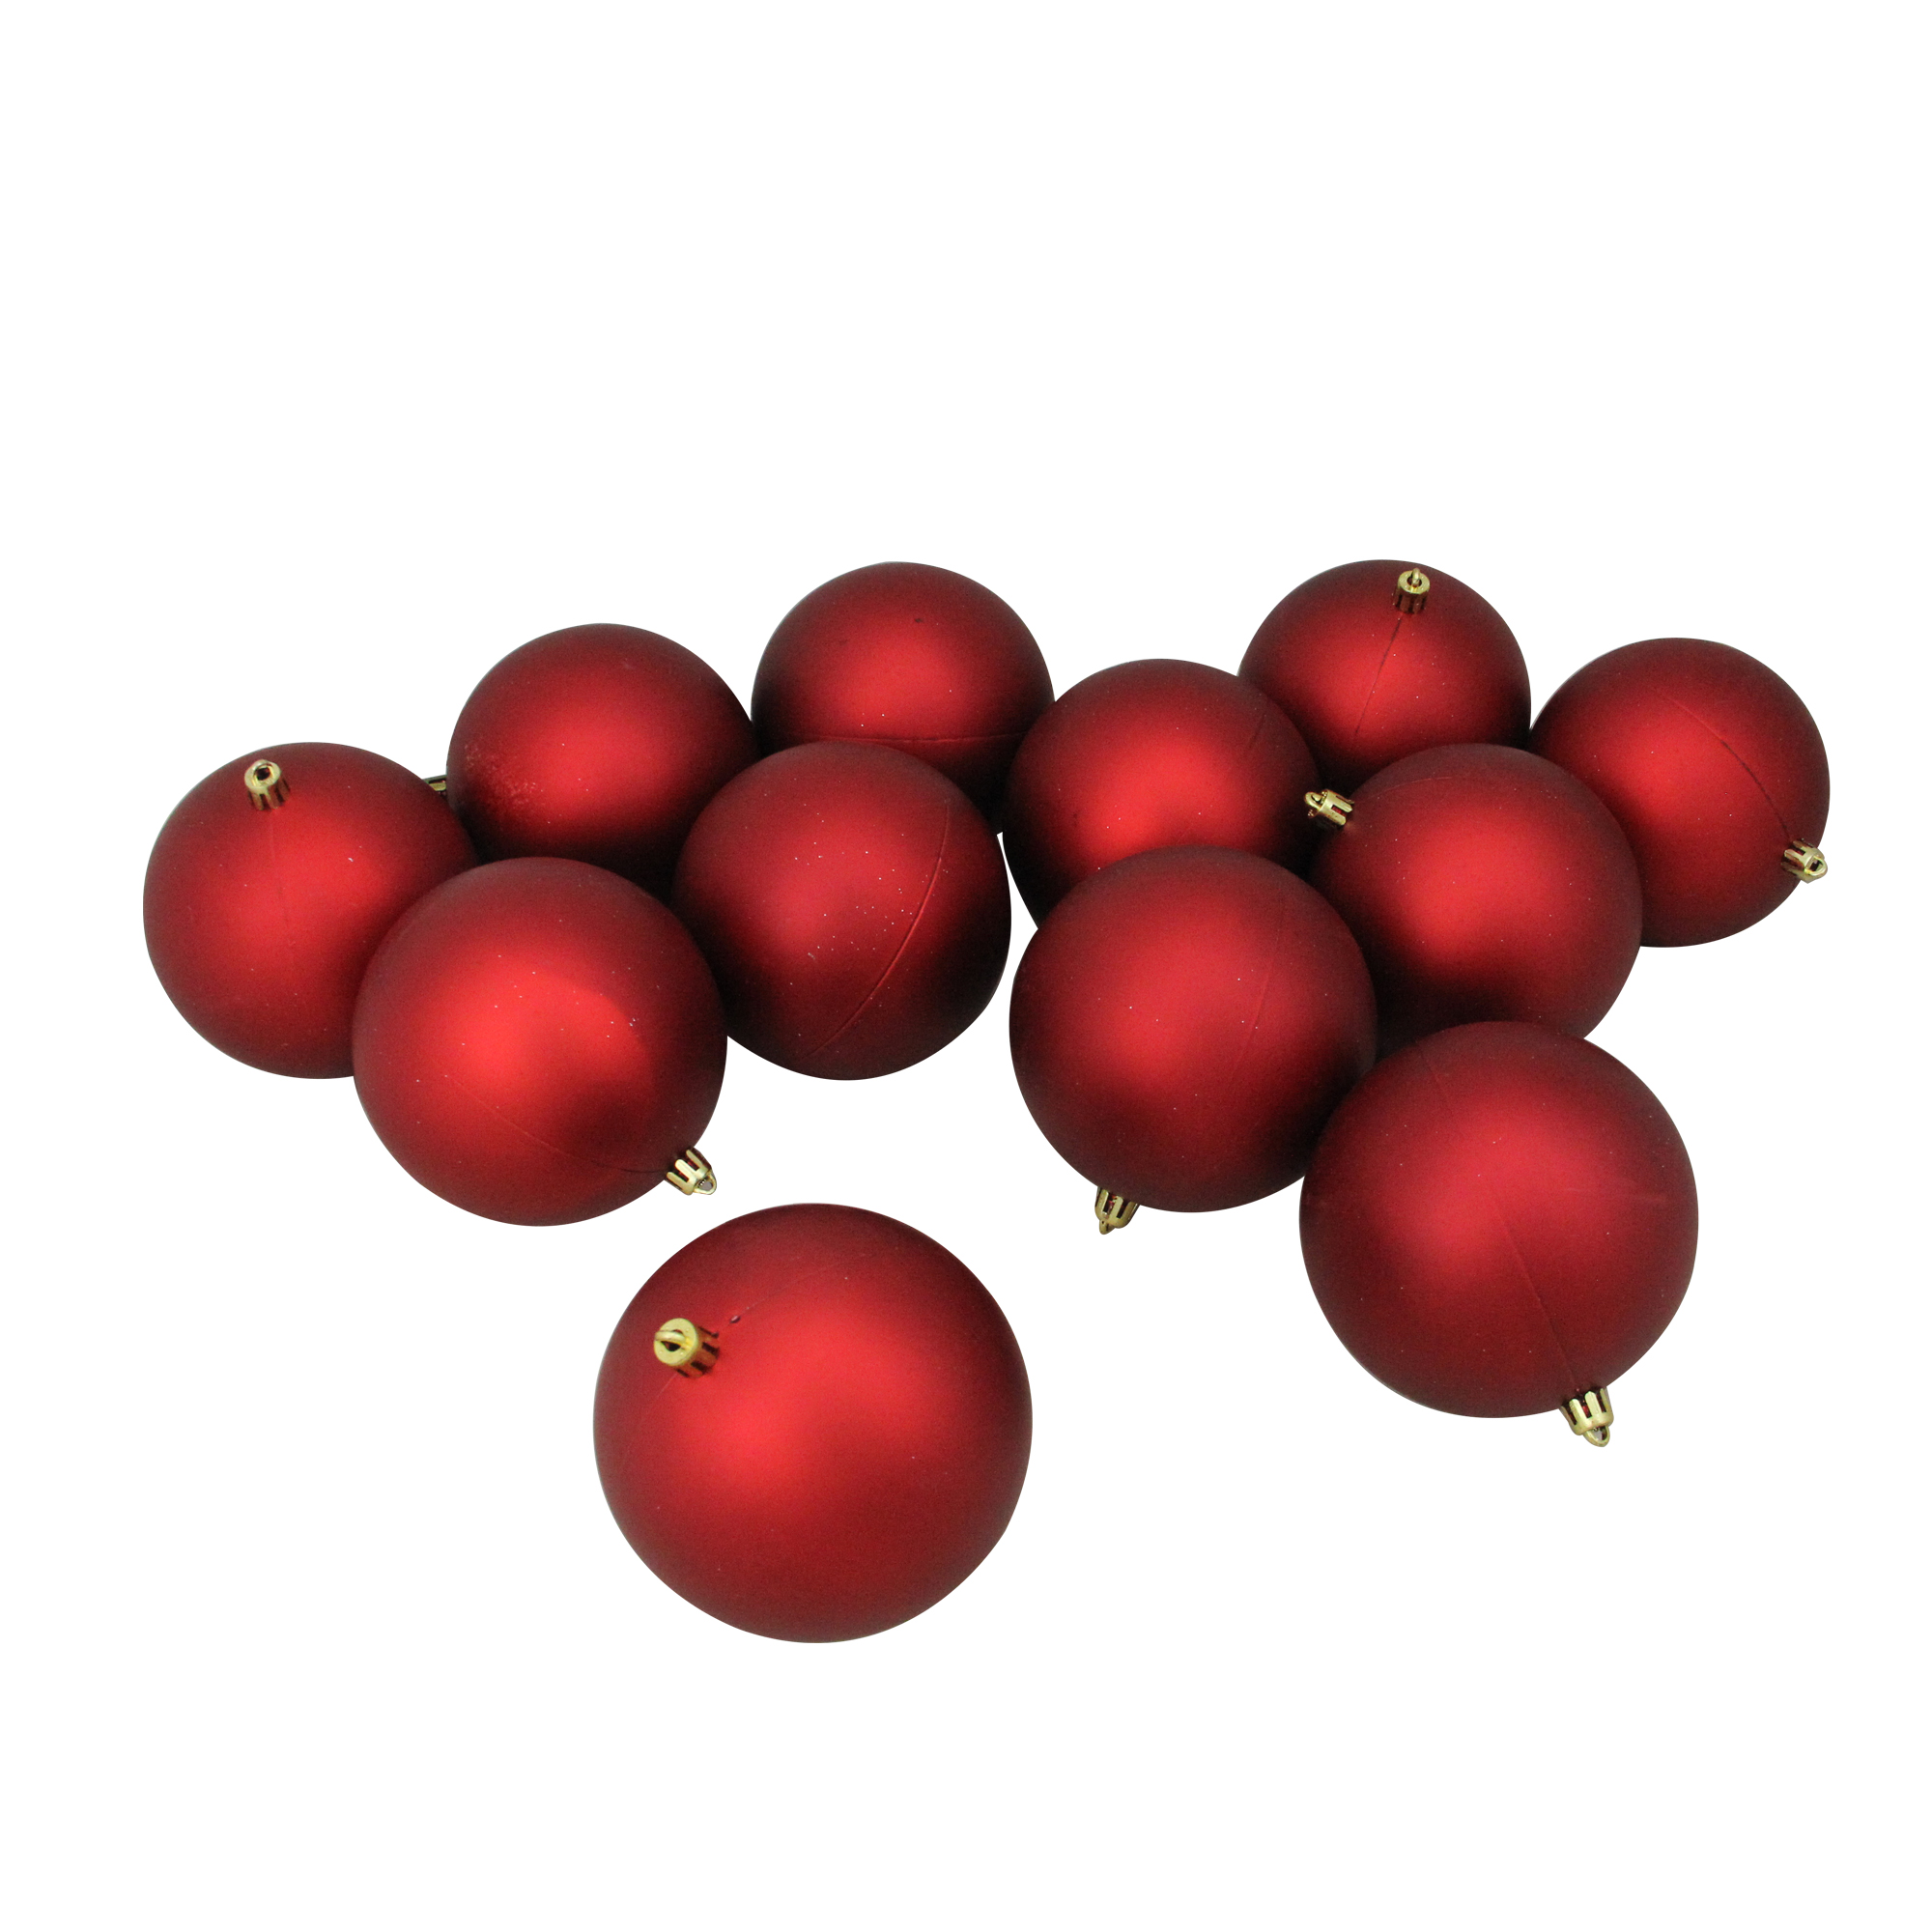 Red Christmas Ball Ornaments.Details About 12ct Red Shatterproof Matte Christmas Ball Ornaments 4 100mm